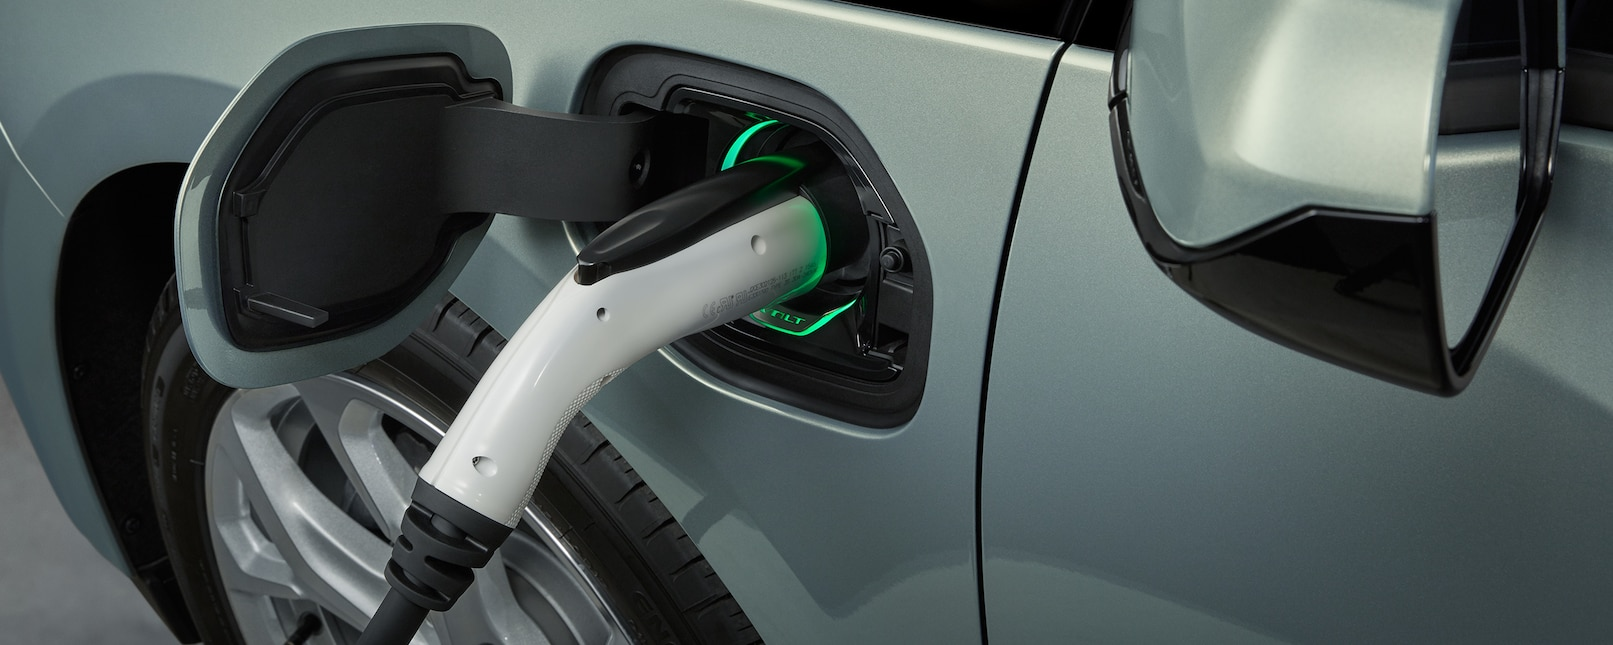 Easy Charging in the 2019 Chevrolet Volt